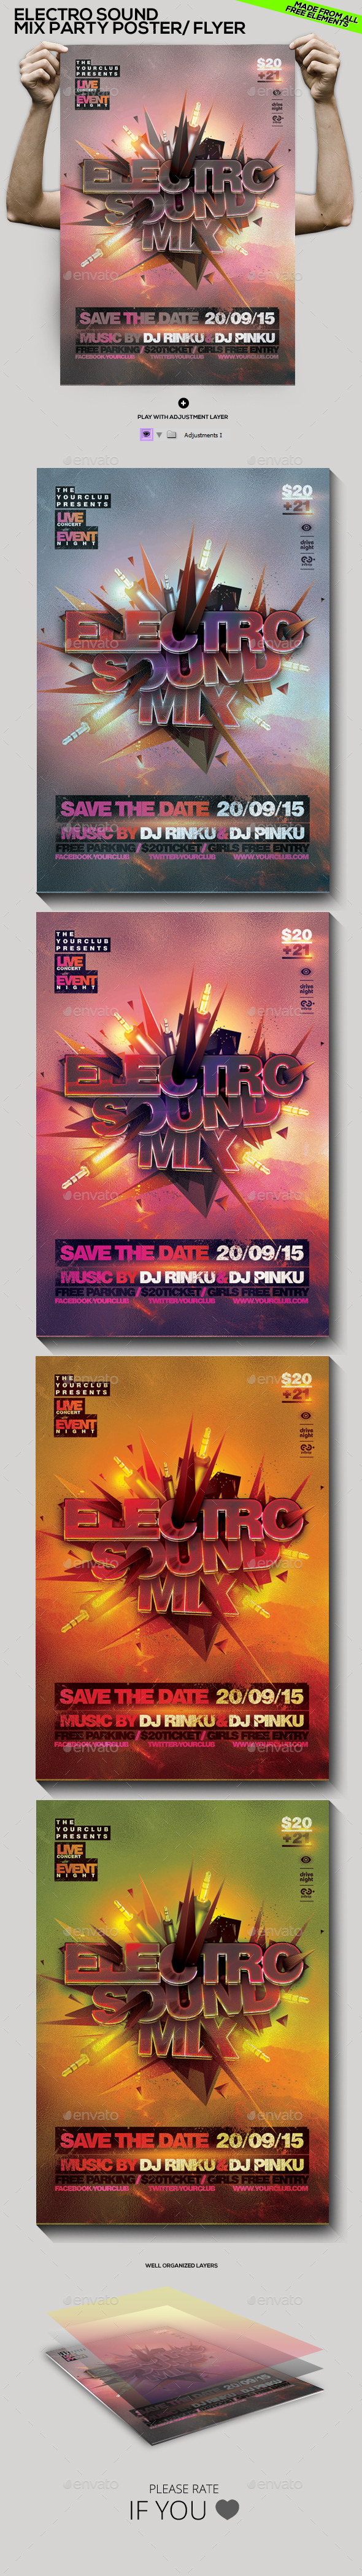 GraphicRiver Electro Sound Mix Party Poster Flyer Template 11158735